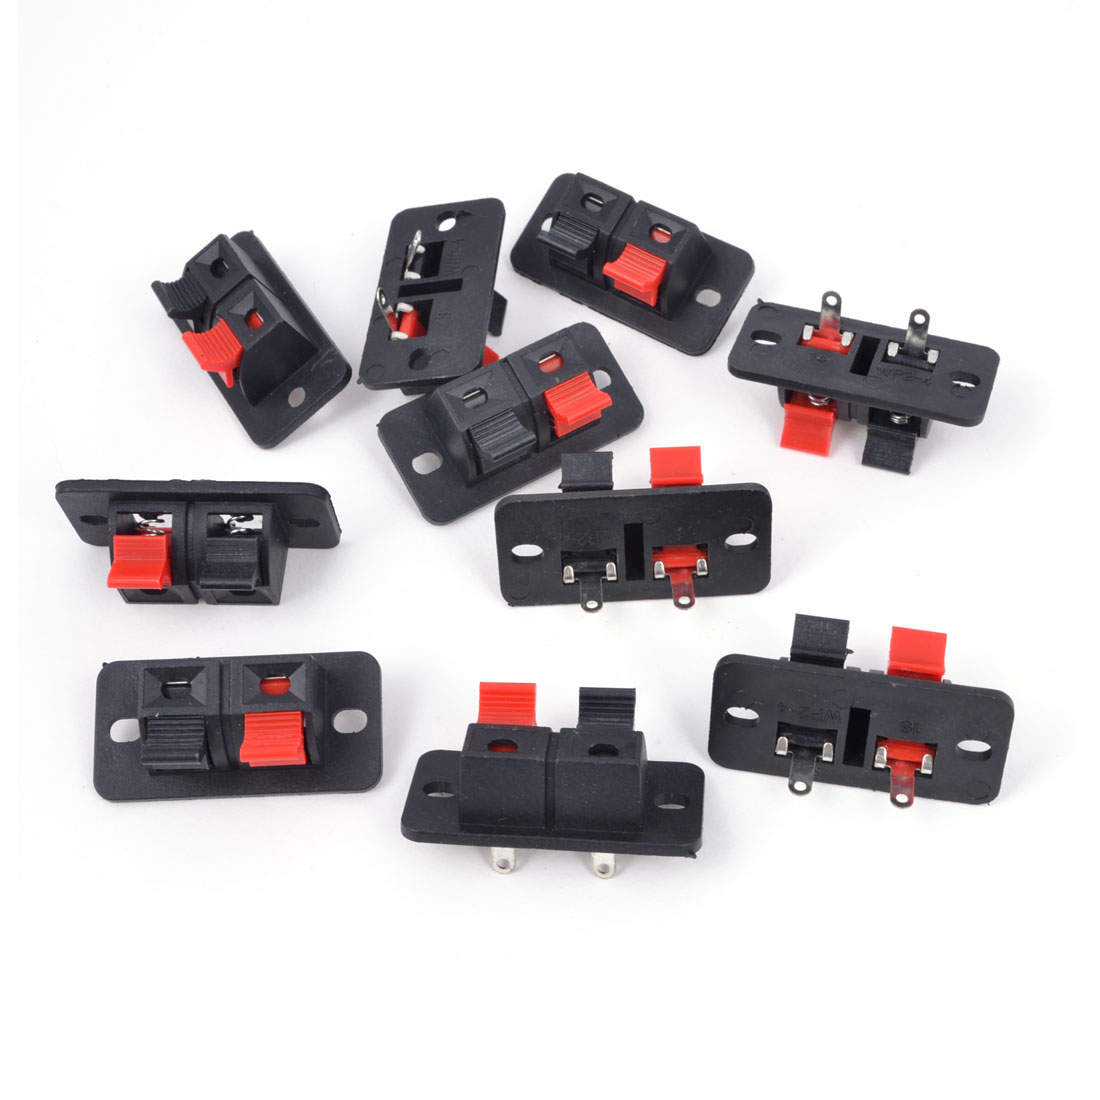 10Pcs 2 Way Stereo Speaker Plate Terminal Strip Push Release Connector Block